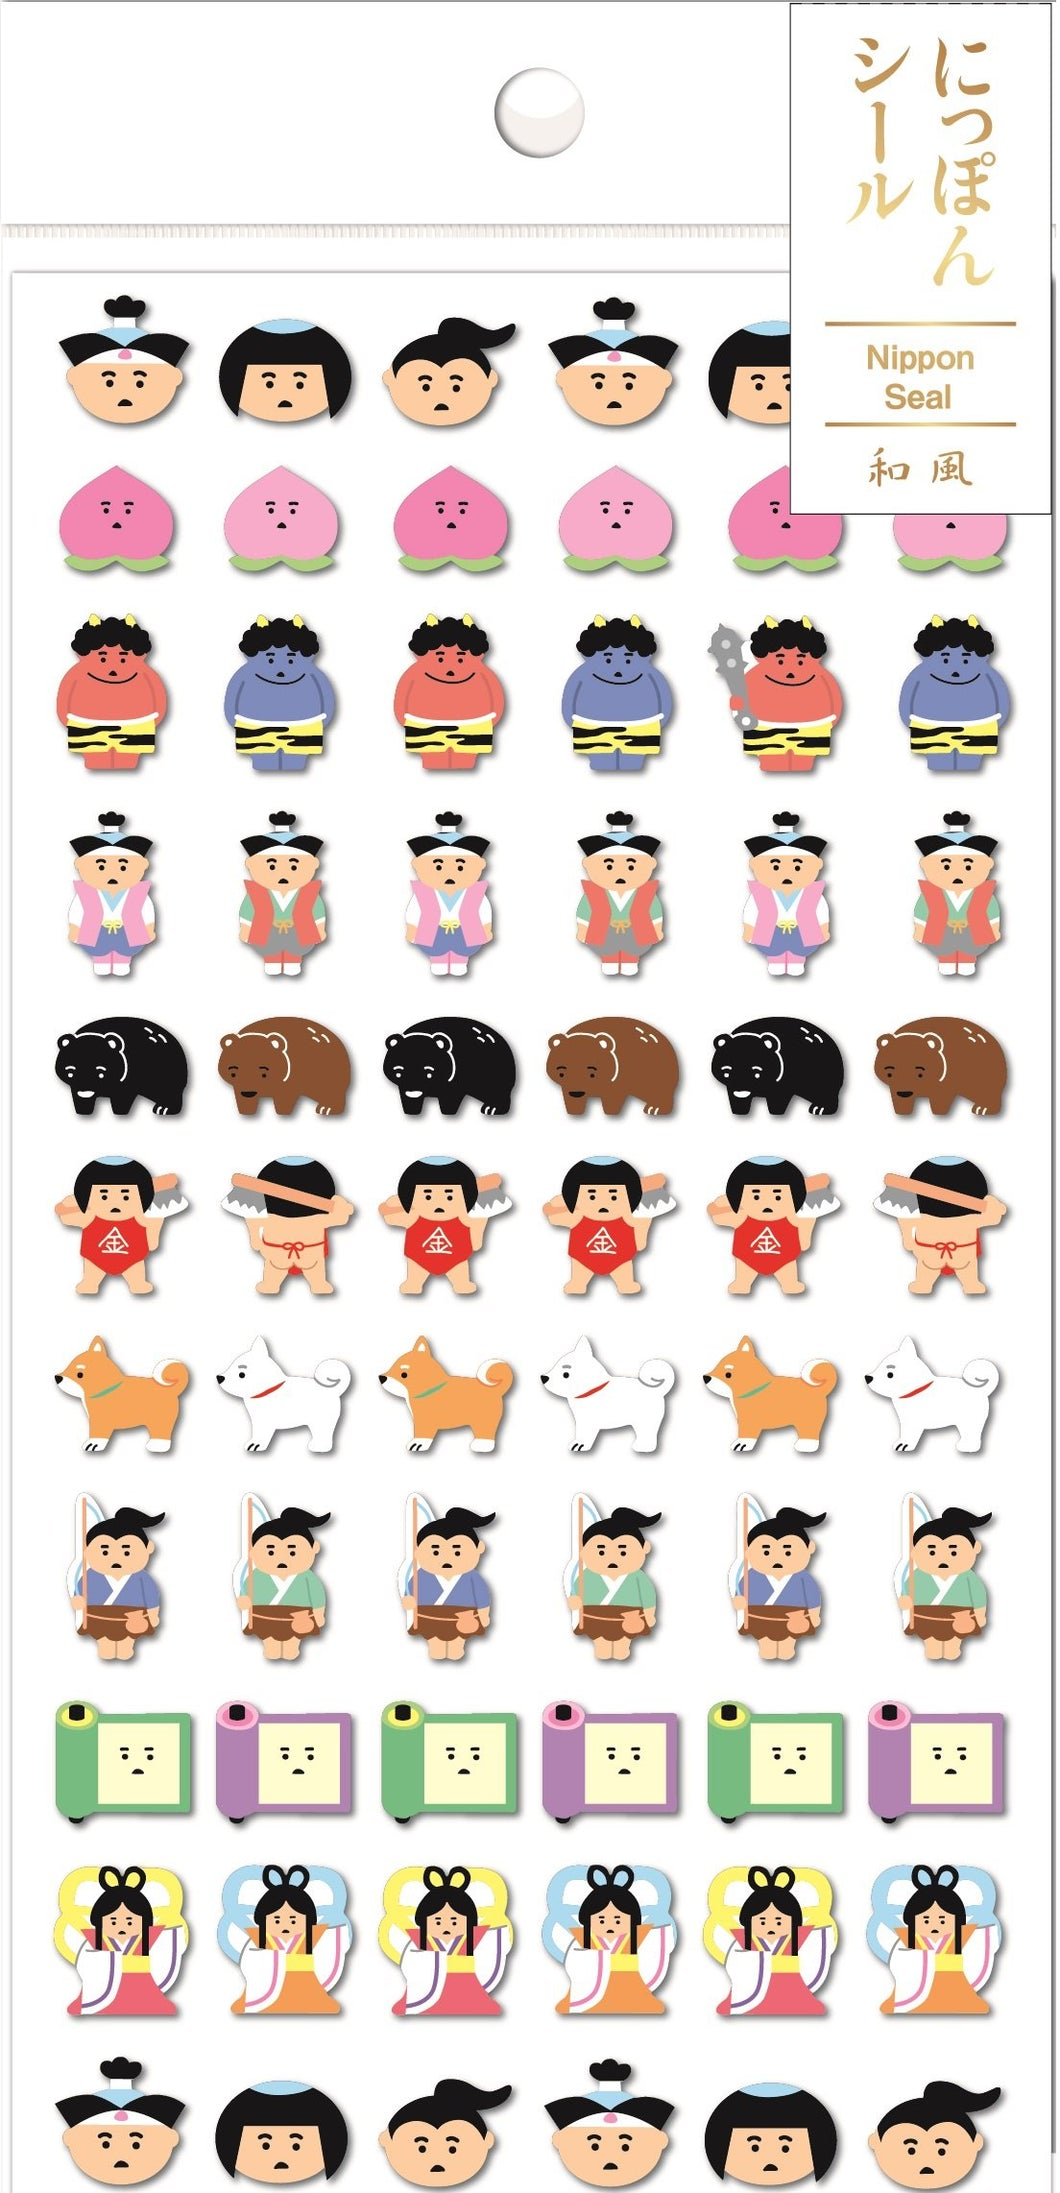 783891 NIPPON MINI PEACH BOY STICKERS-1 sheet